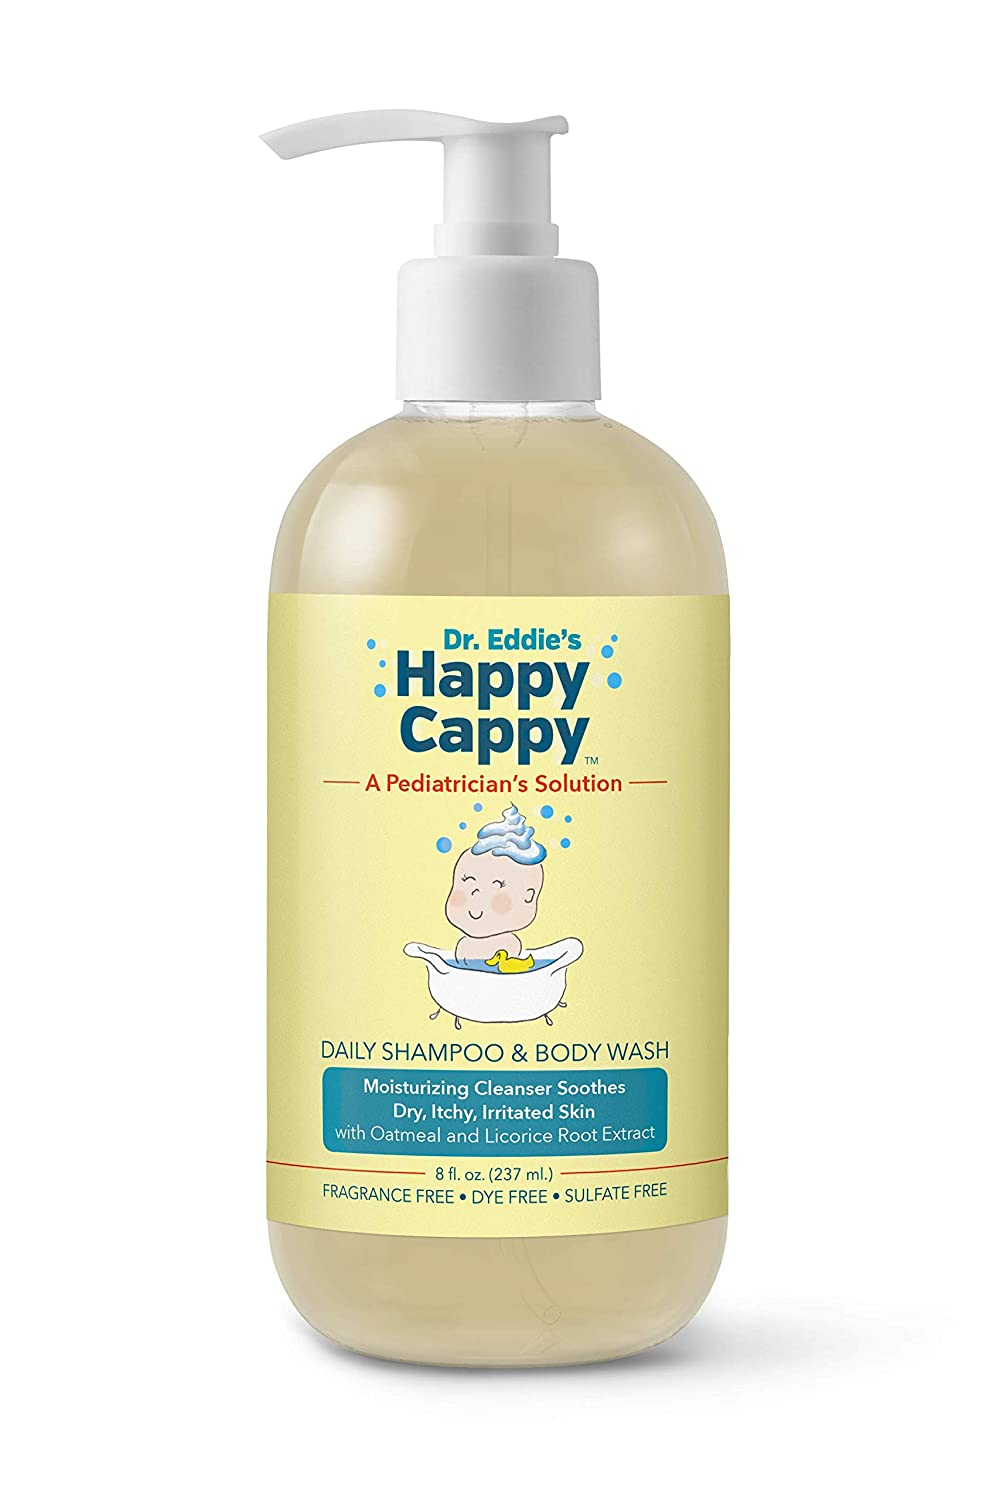 Dr. Eddie's Happy Cappy Daily Shampoo & Body Wash for Children, Clinically Tested, Fragrance Free, Moisturizing Cleanser Soothes Sensitive Scalps and Skin, 8 oz